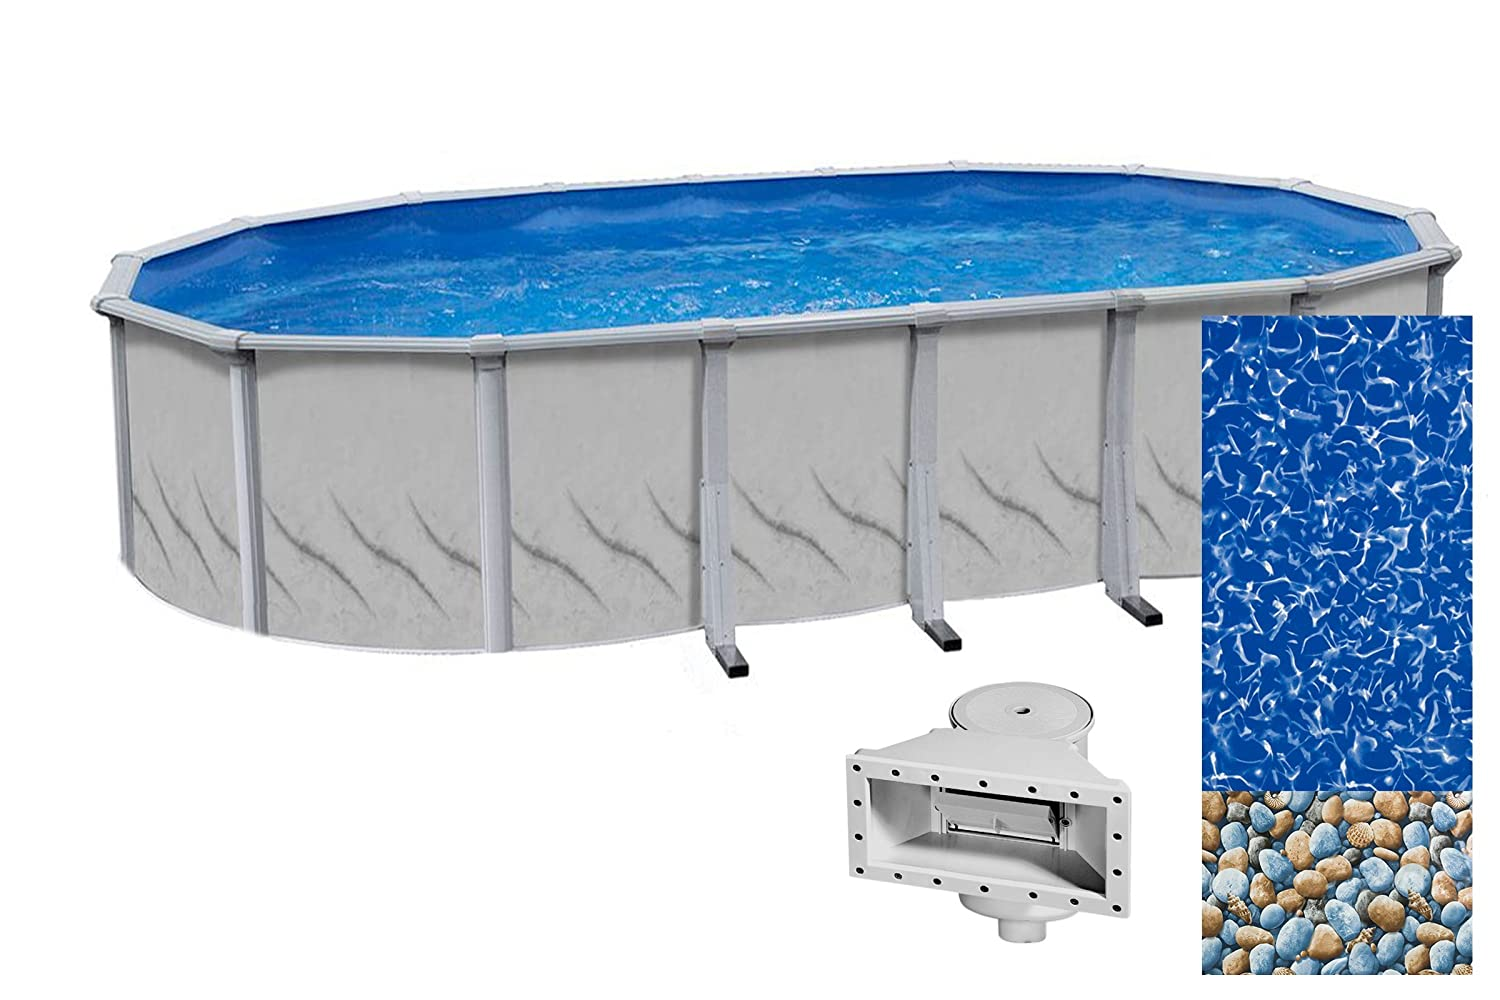 Amazon.com : Wilbar Galeria 12-Foot-by-24-Foot Oval Above-Ground Swimming  Pool | 52-Inch Height | Resin Protected Steel-Sided Walls | Bundle with  Bedrock 25 ...